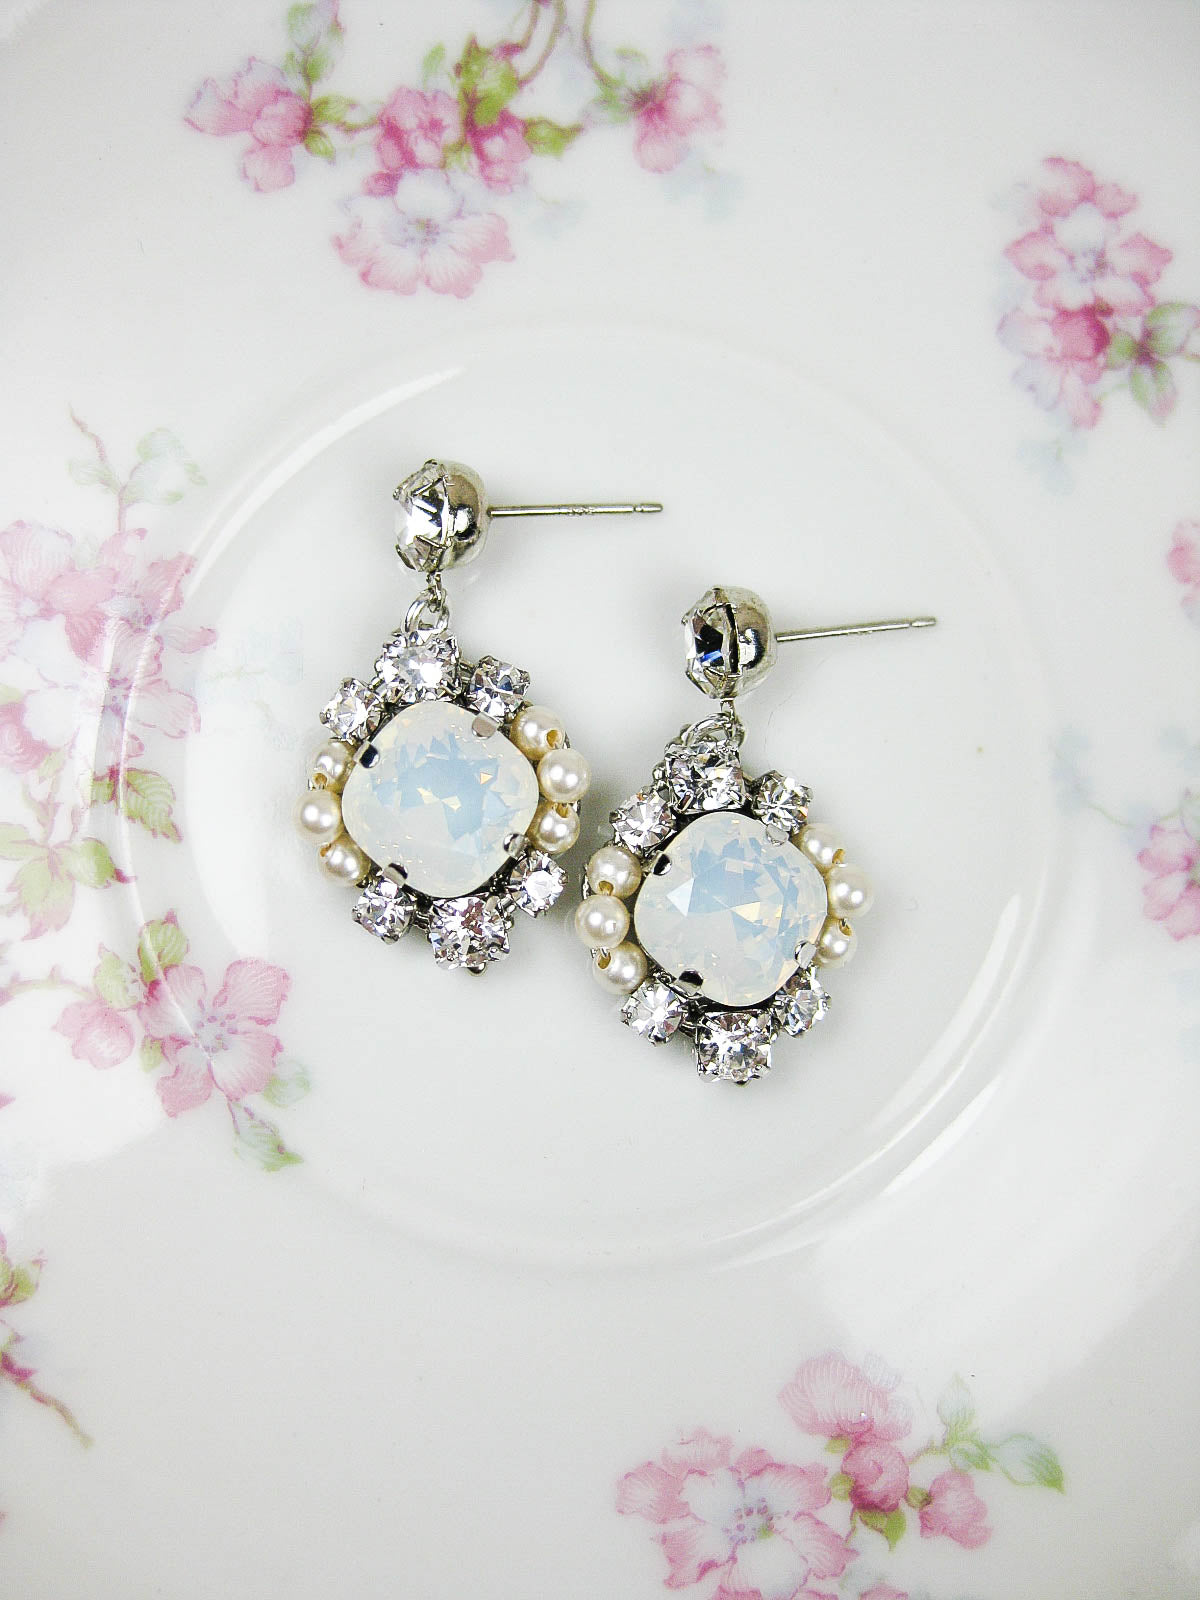 Scarlett III Earrings in Opal/White - e439